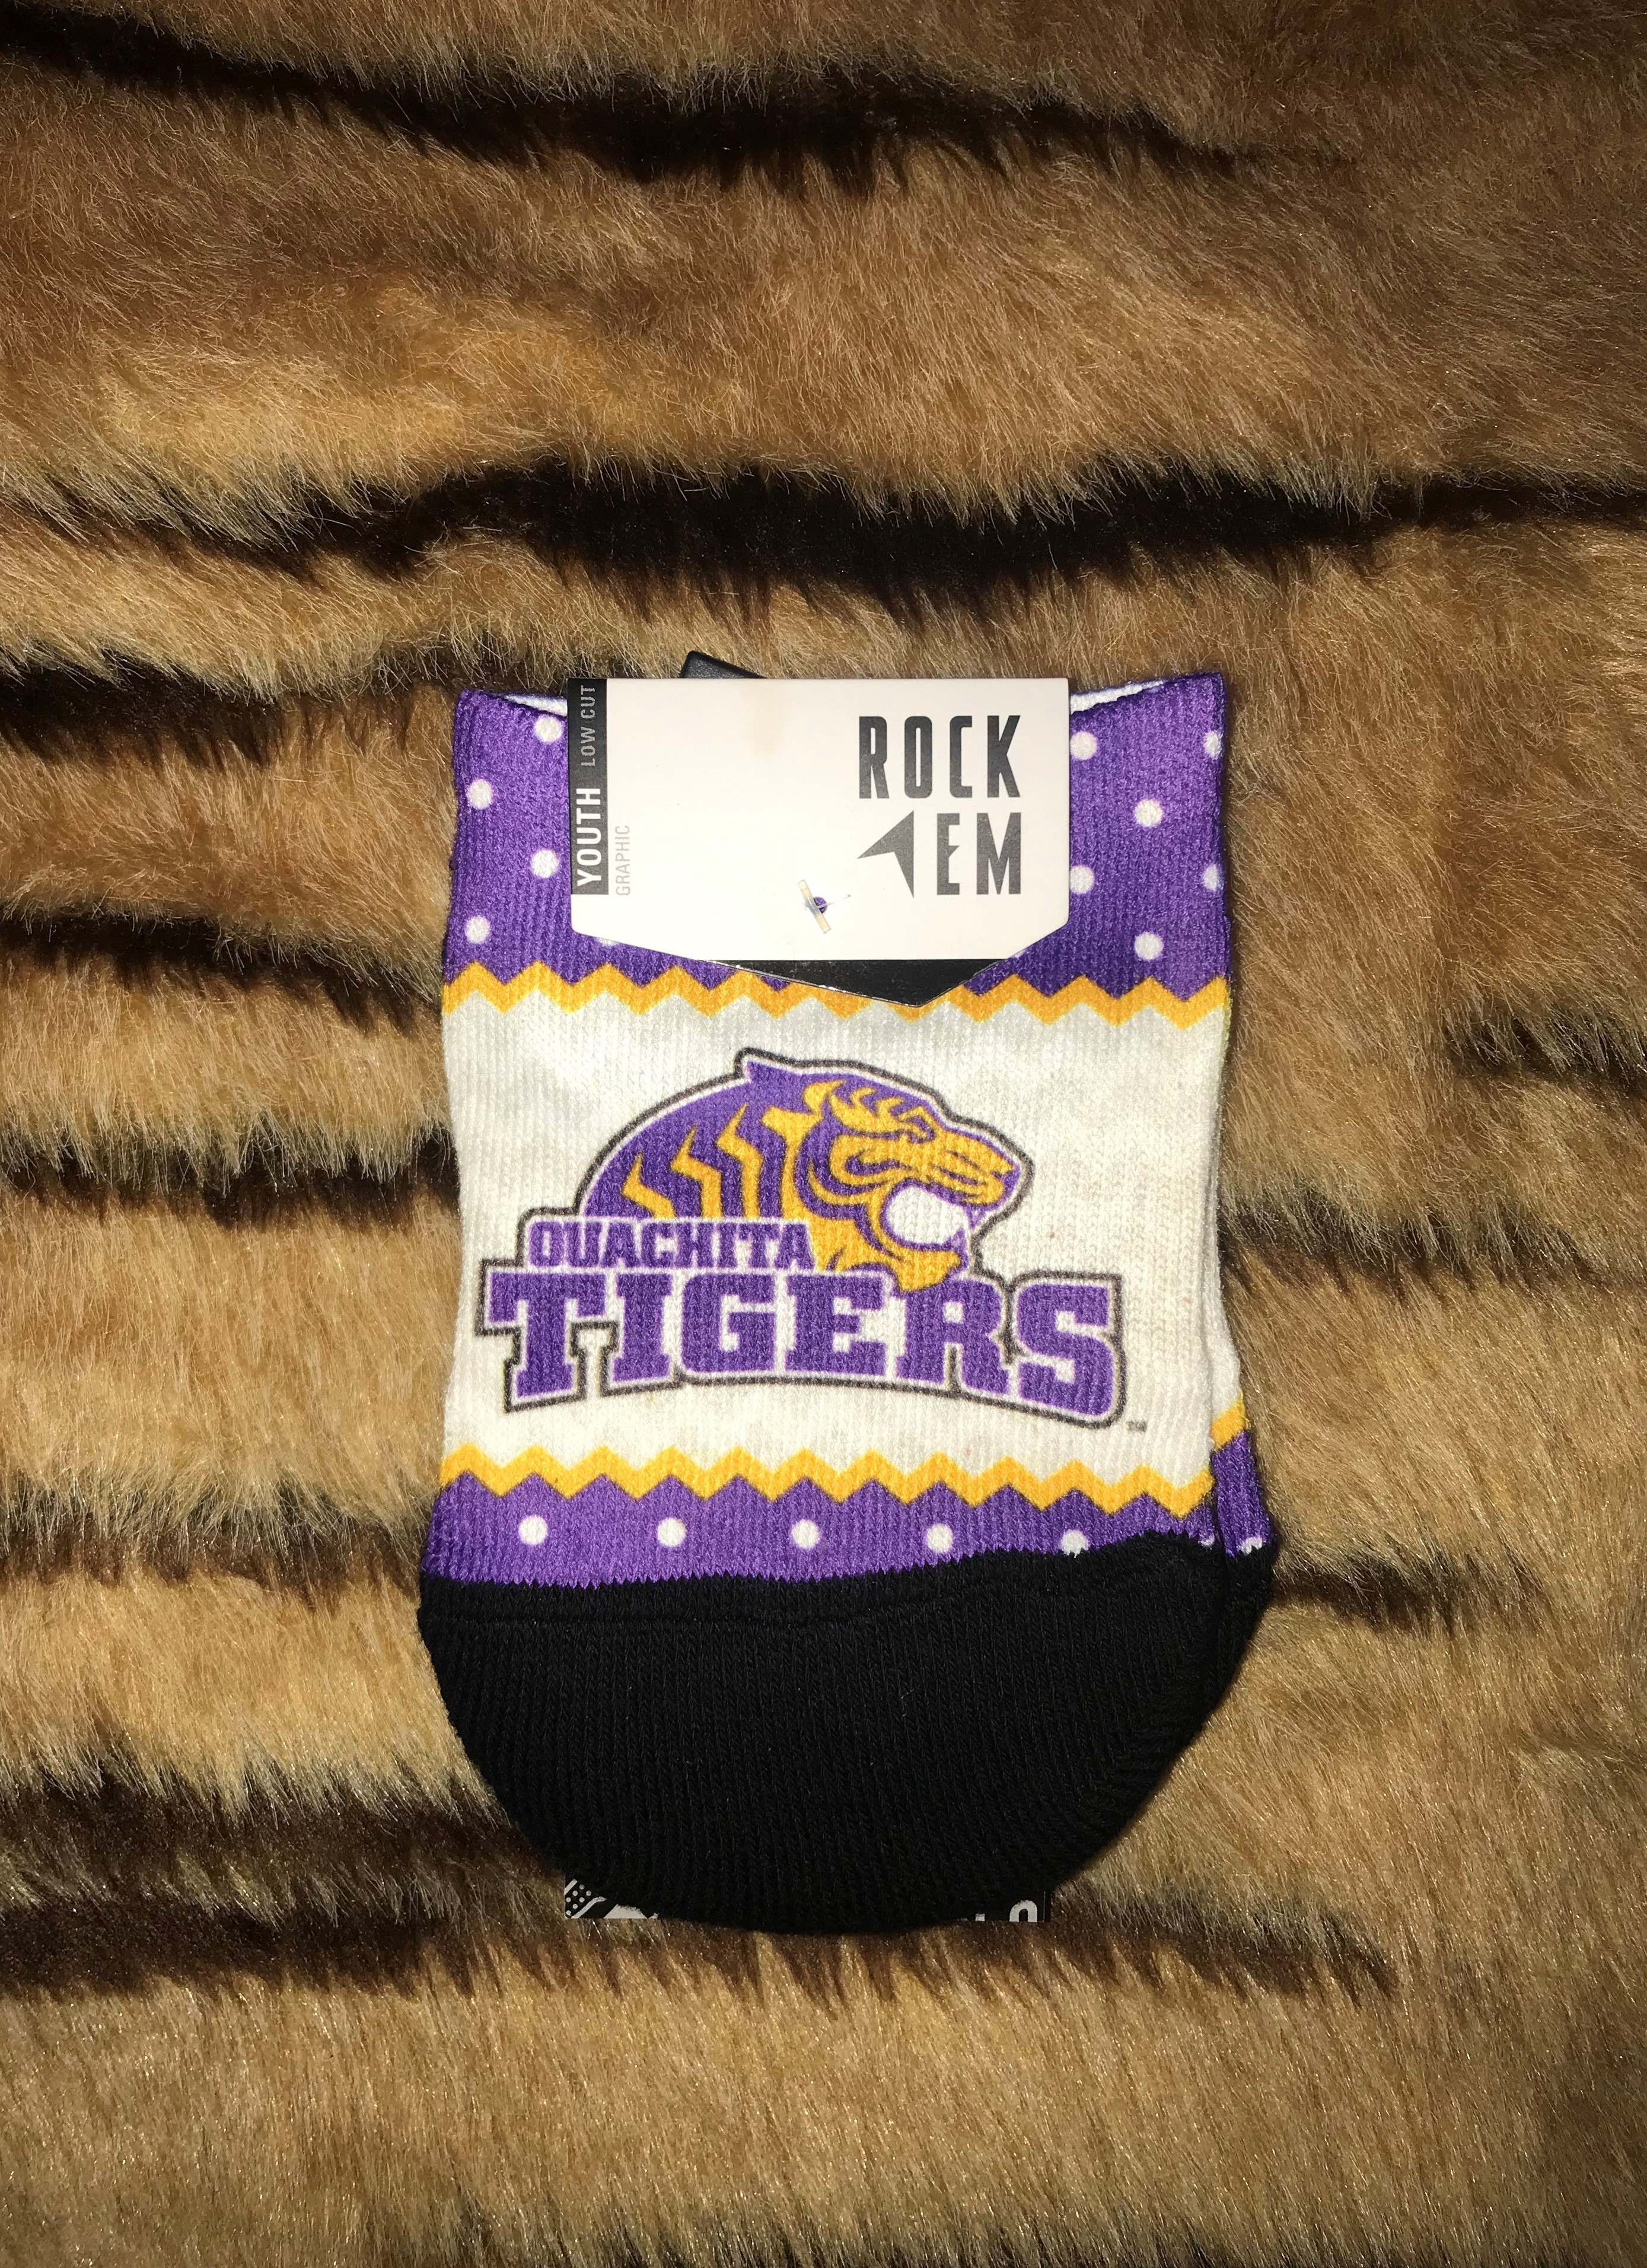 OUACHITA CHEVRON AND DOTS YOUTH ANKLE SOCKS